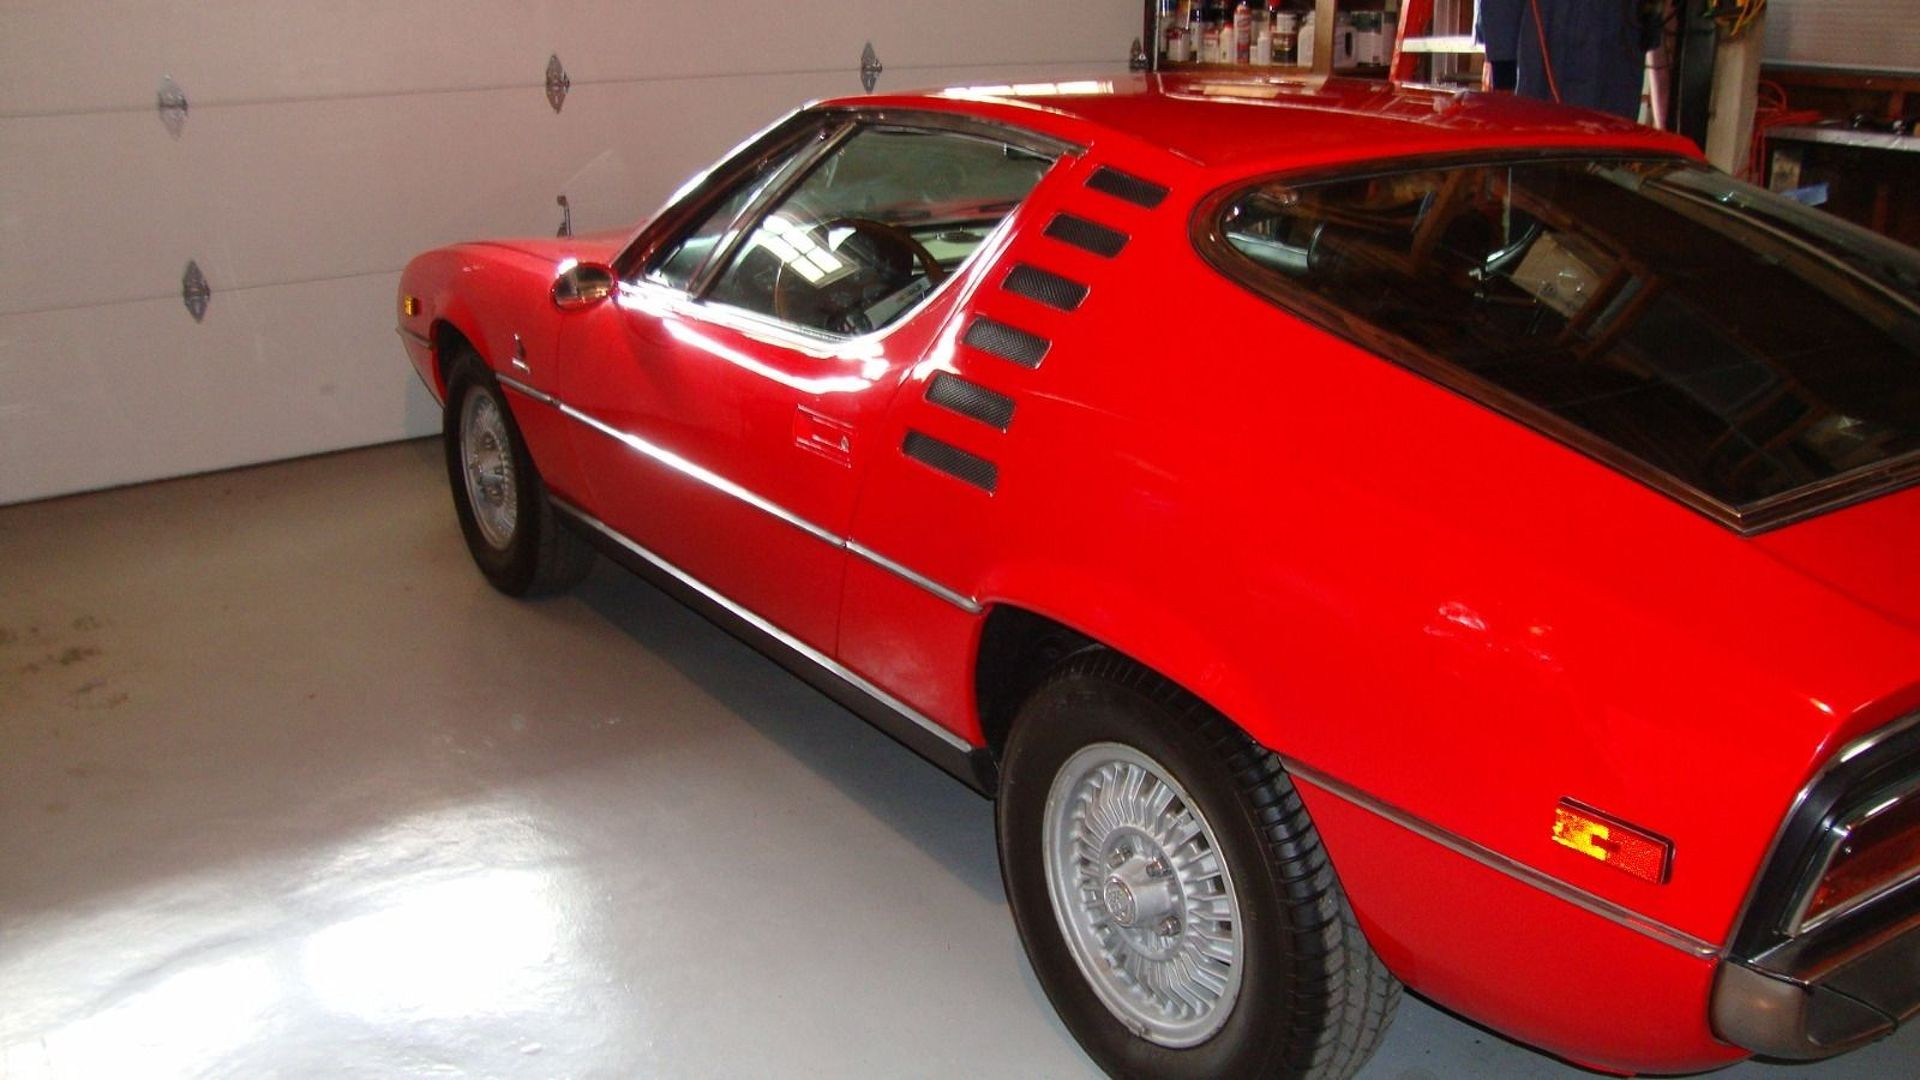 1971 Alfa Romeo Montreal Ebay Find Leaves Little To The